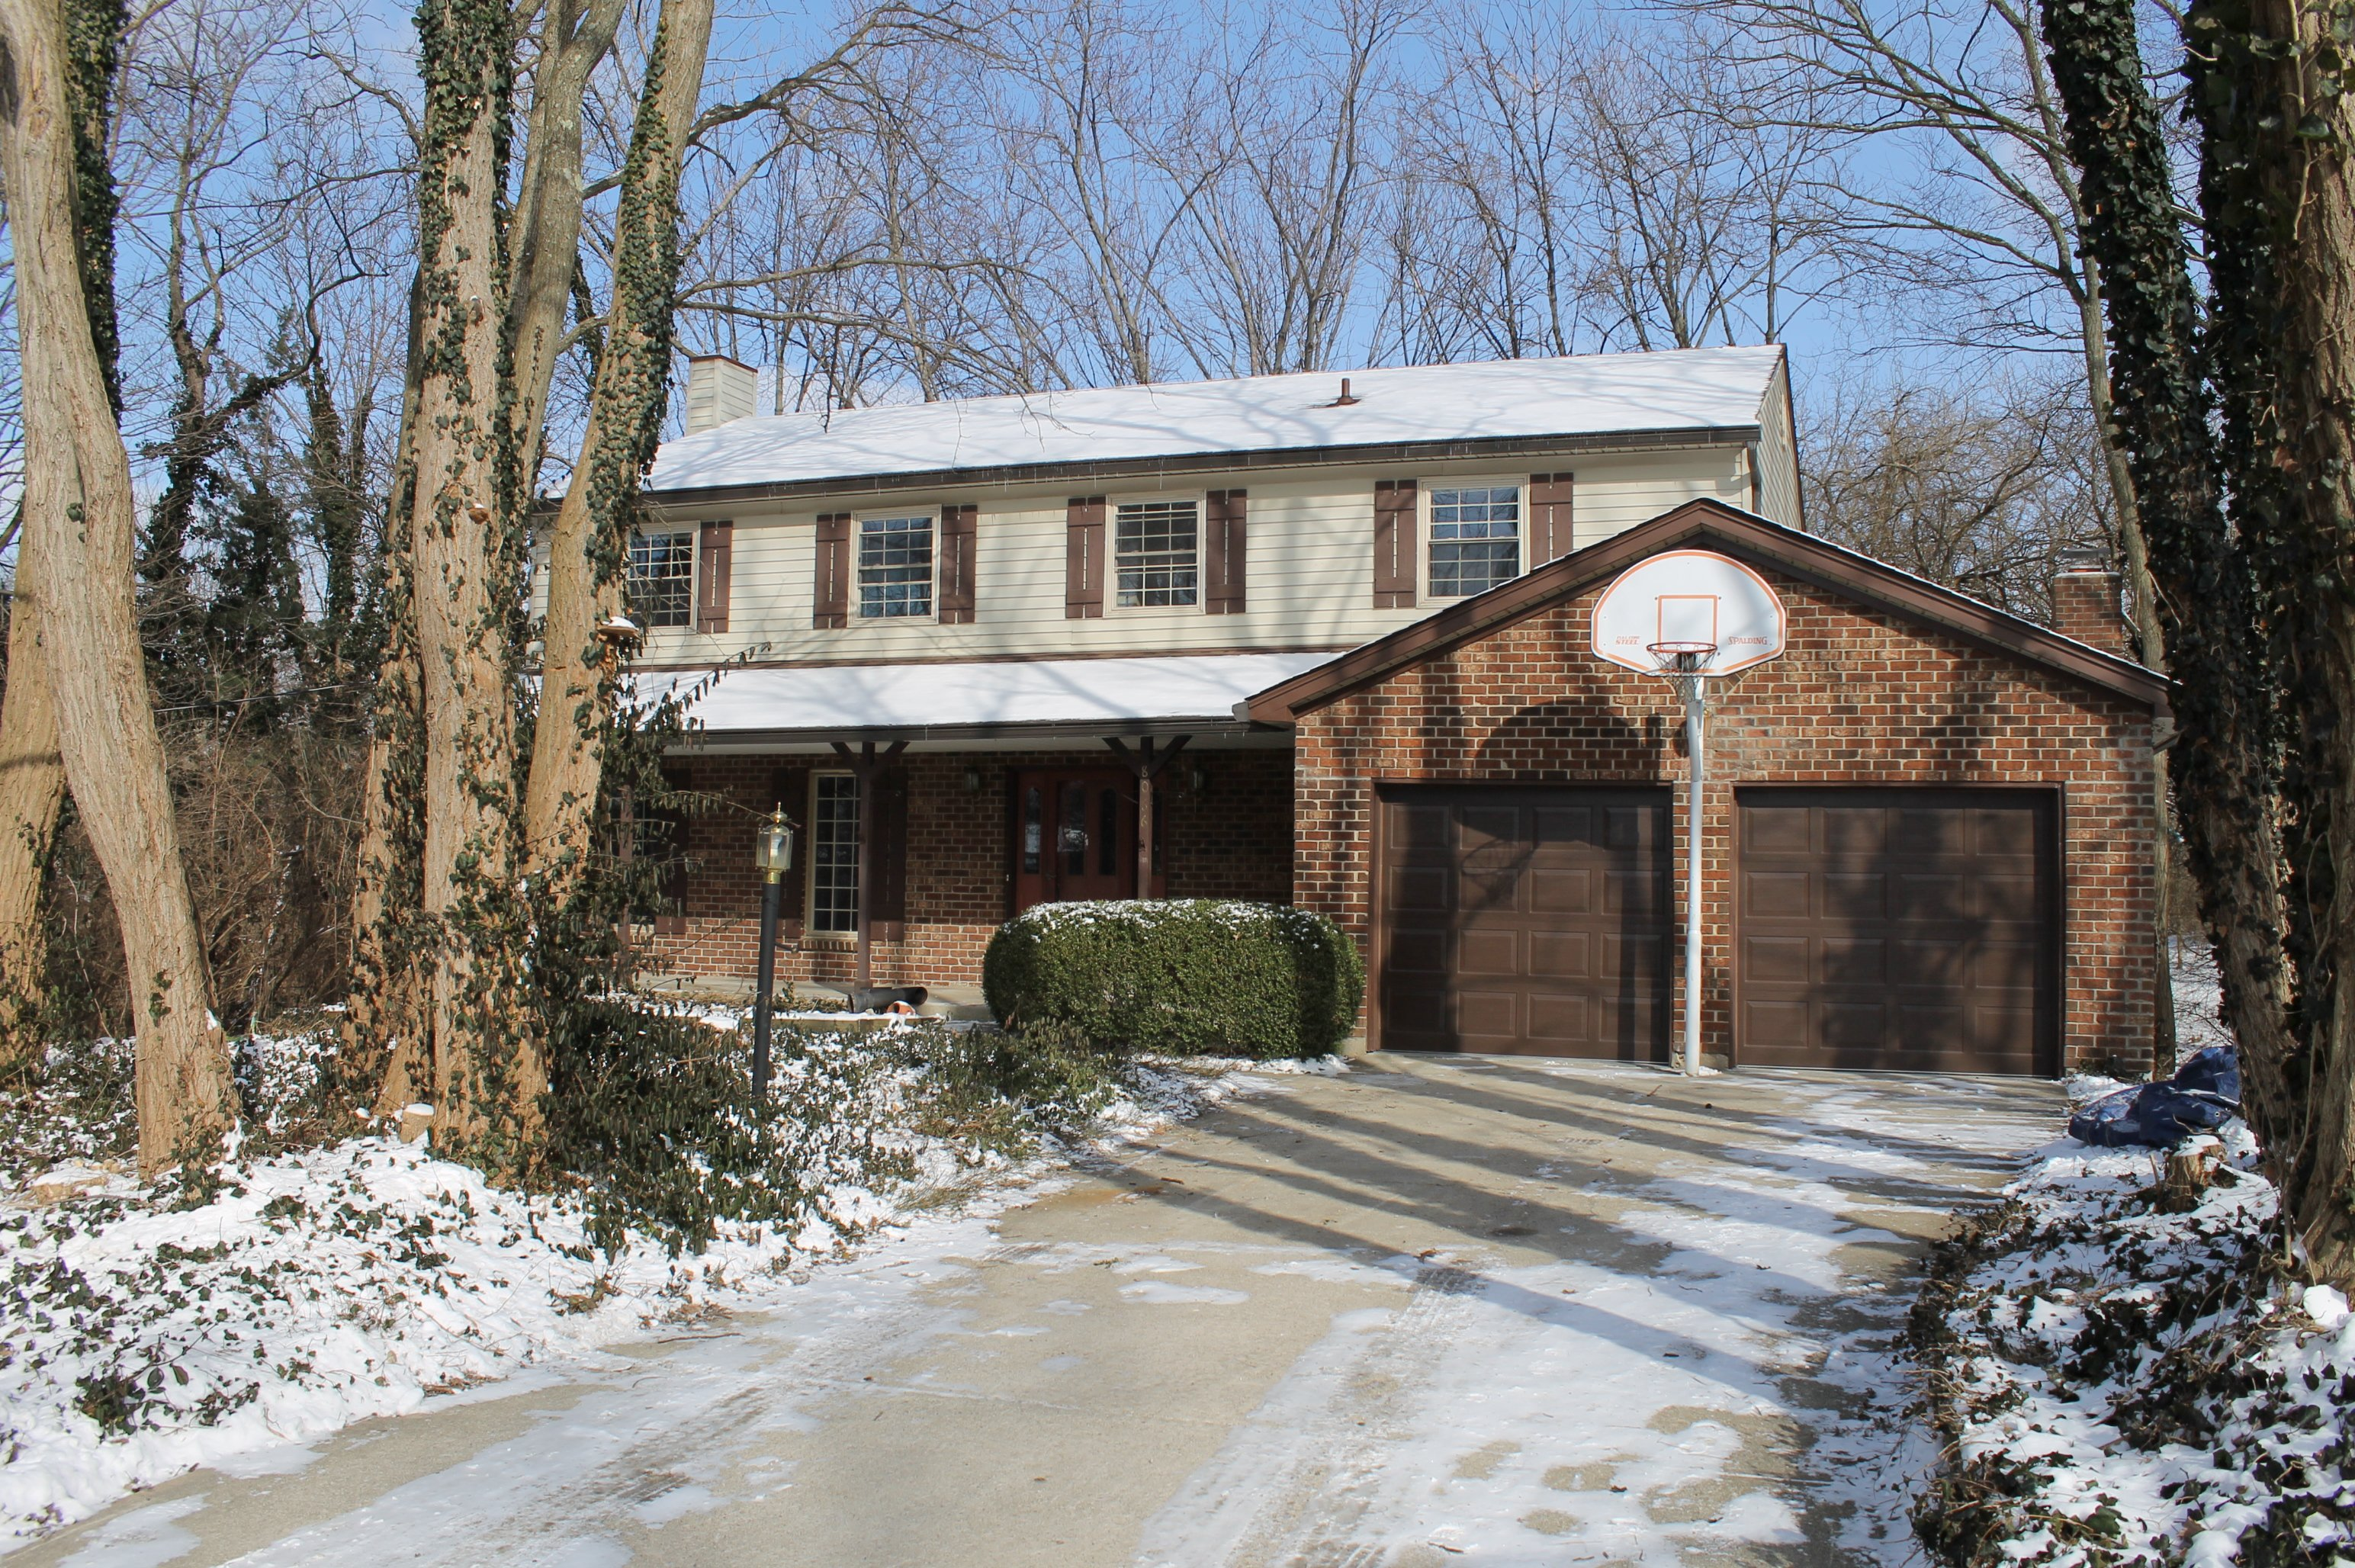 Homes for Sale west chester, ohio liberty township, lakota schools